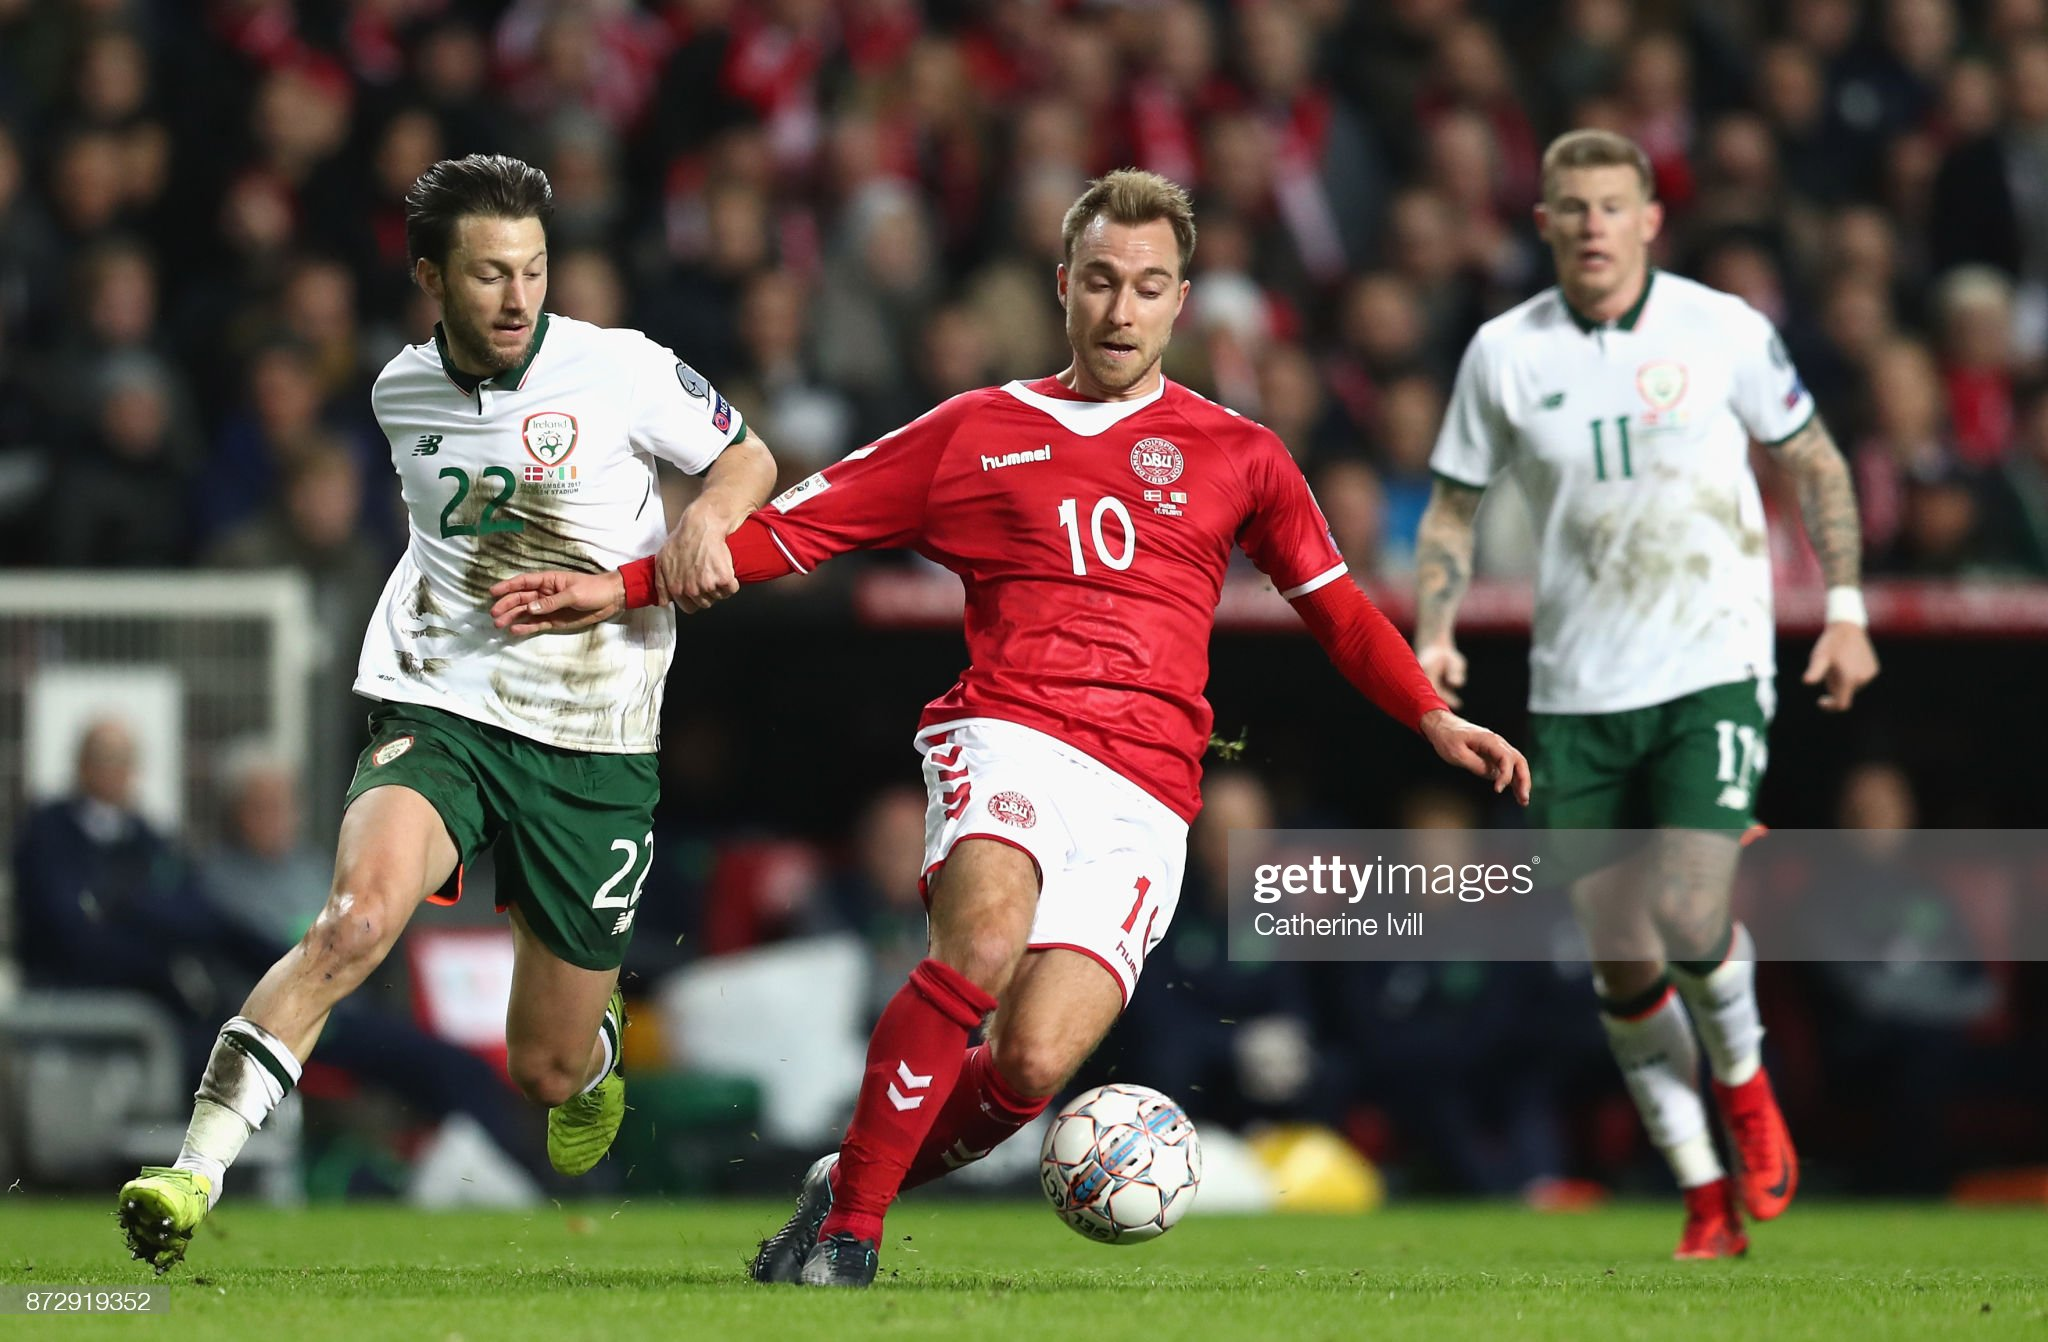 Republic of Ireland v Denmark preview, prediction and odds